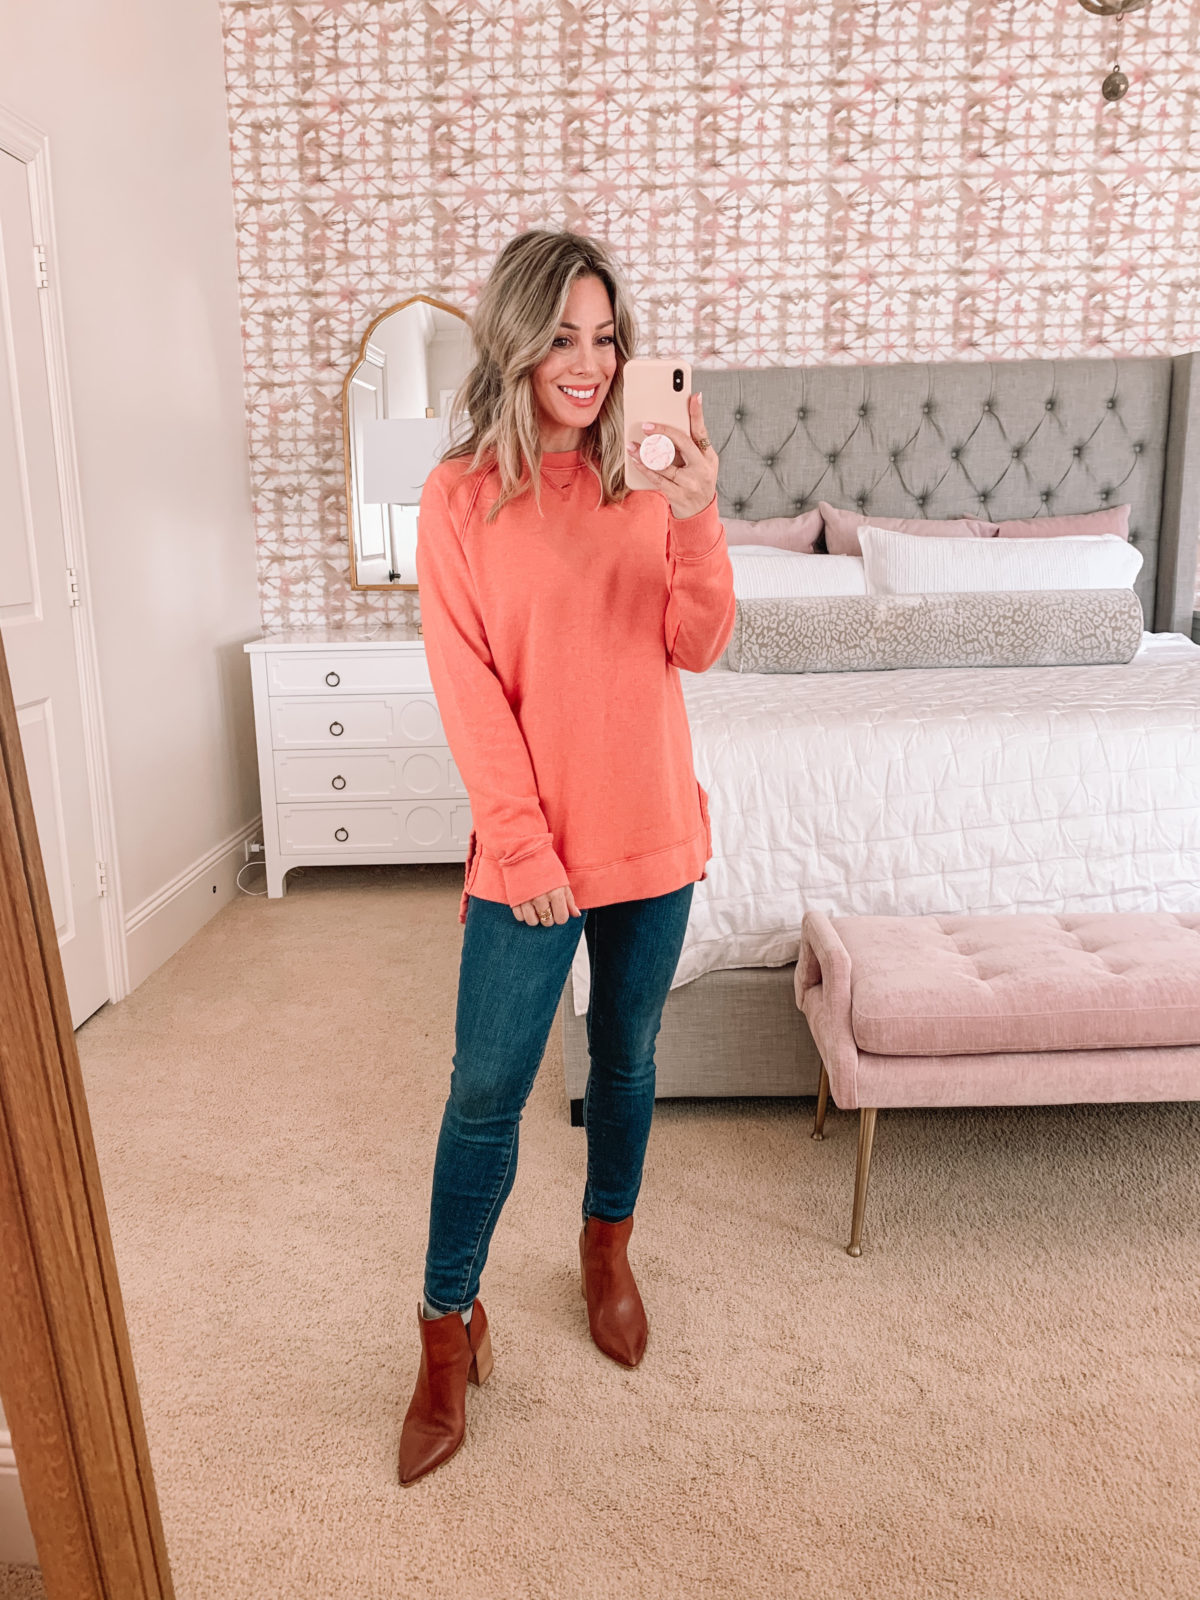 Dressing Room Finds, Nordstrom, Target, Express, LOFT, Tunic Sweatshirt, Jeans, Booties